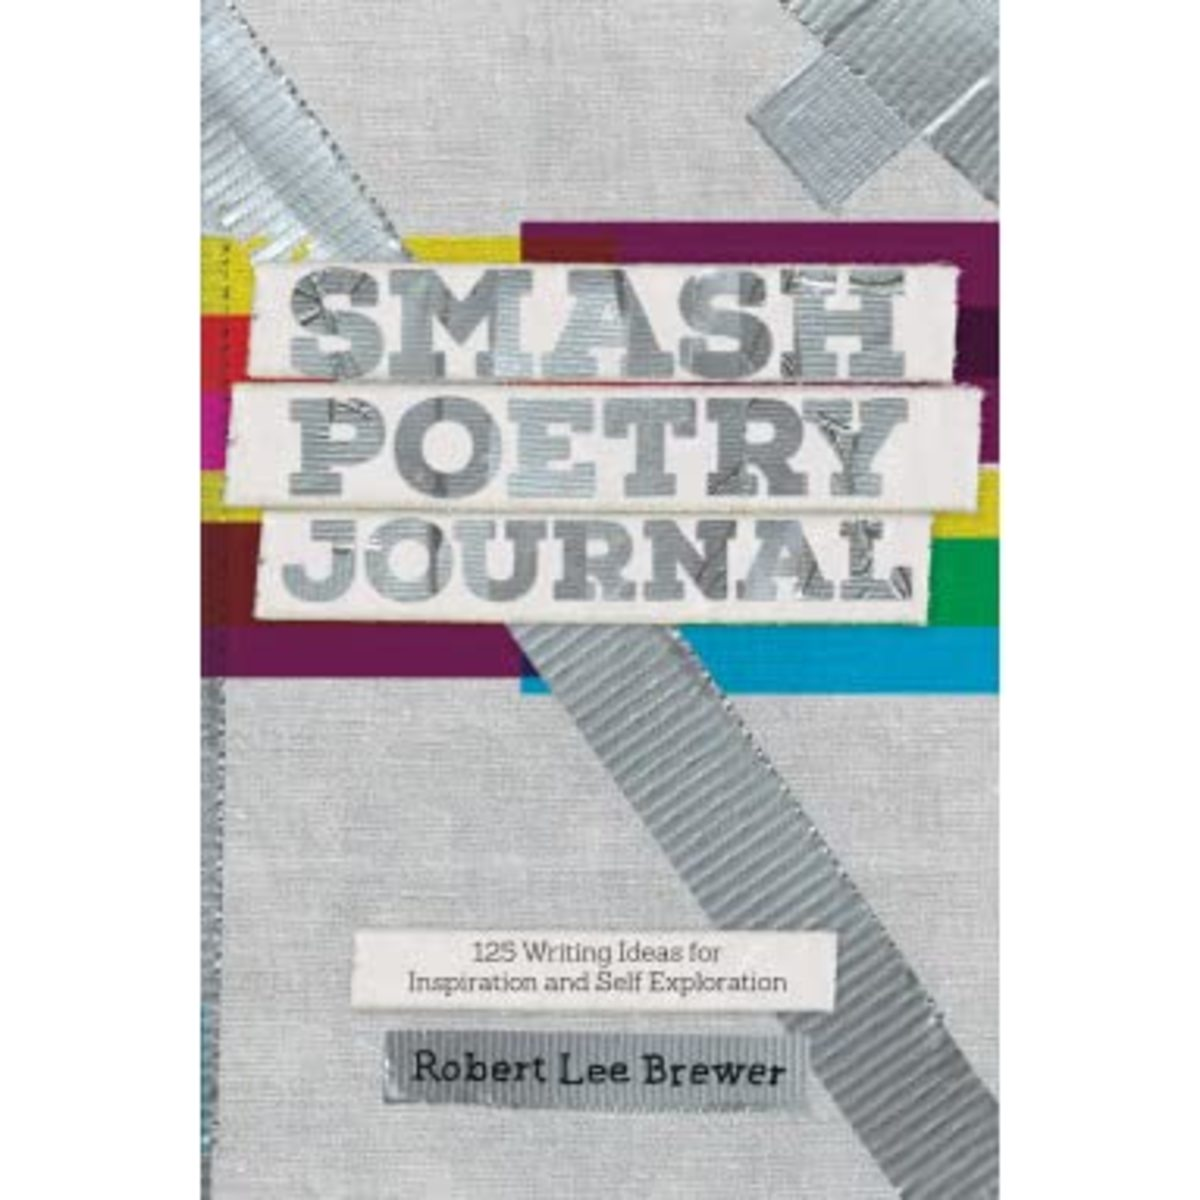 smash poetry journal robert lee brewer